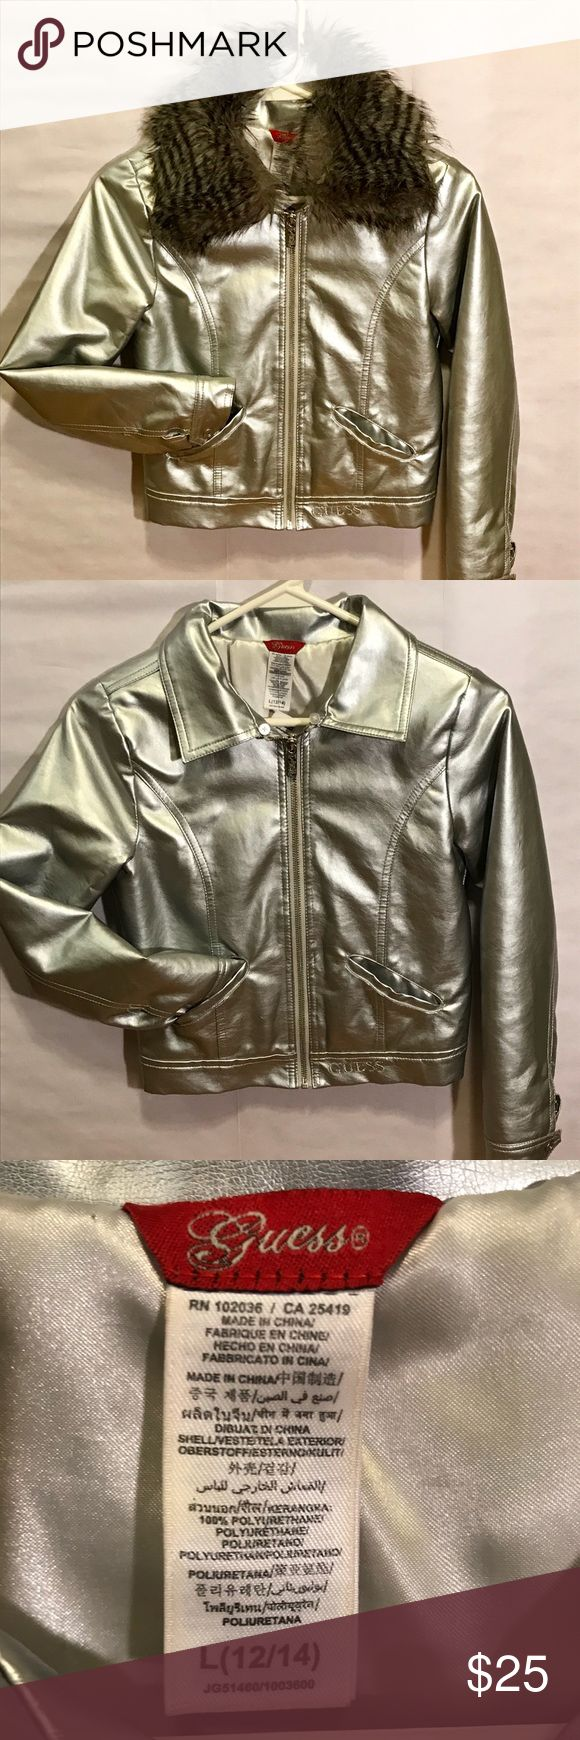 GUESS silver metallic jacket GUESS super cute silver metallic jacket with detachable fur collar- fur buttons onto the collar. Adorable with or without the fur. One button is missing on the corner of collar (to attach the fur) but does not effect it. Guess Jackets & Coats